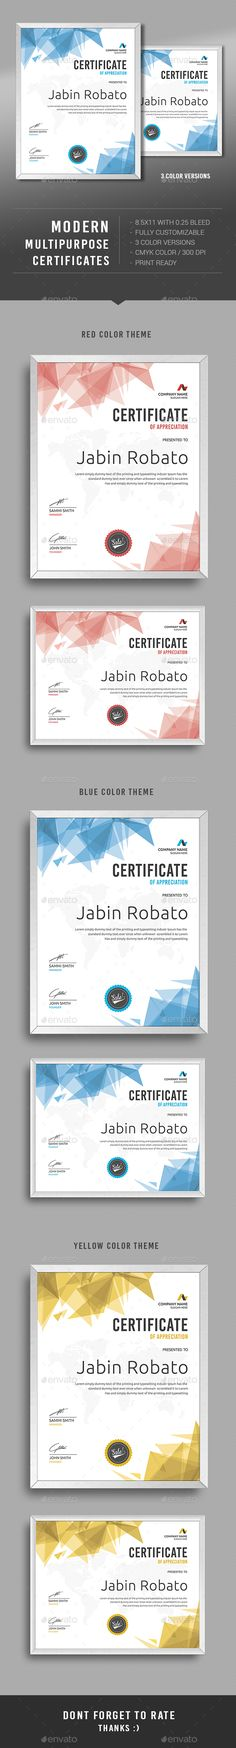 Free Online Certificate Maker Design a Custom   Canva